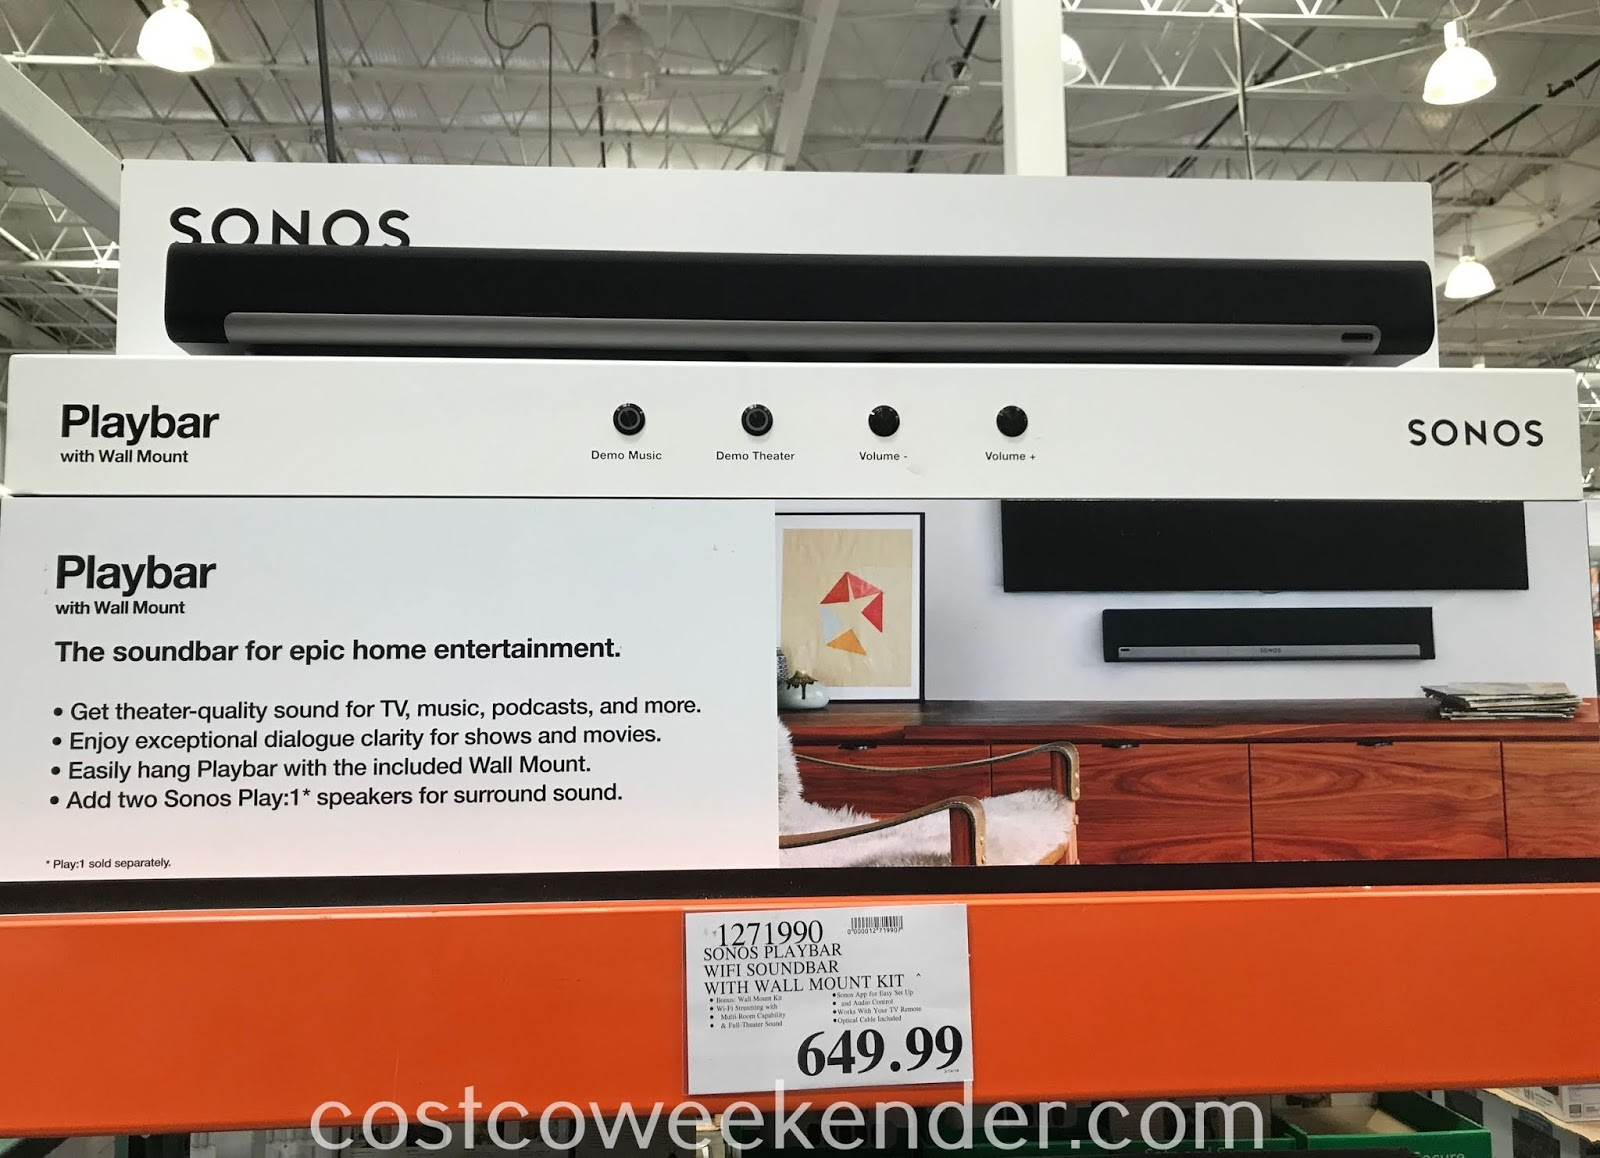 Costco 1271990 - Watching home movies just got better with the Sonos Playbar soundbar